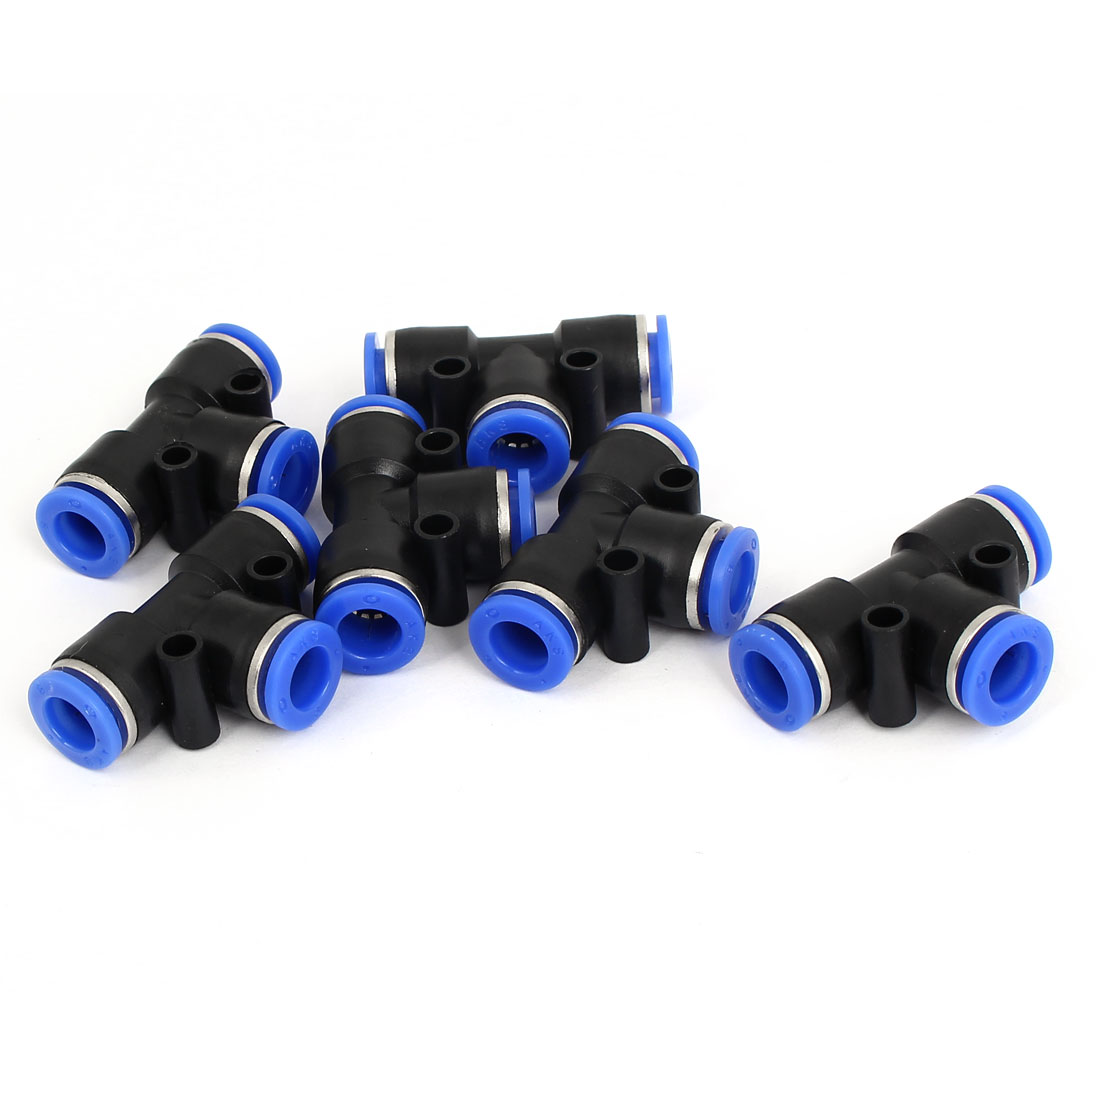 6pcs 8mm to 8mm Connector Air Pneumatic T Style Quick Joint Fittings Black Blue